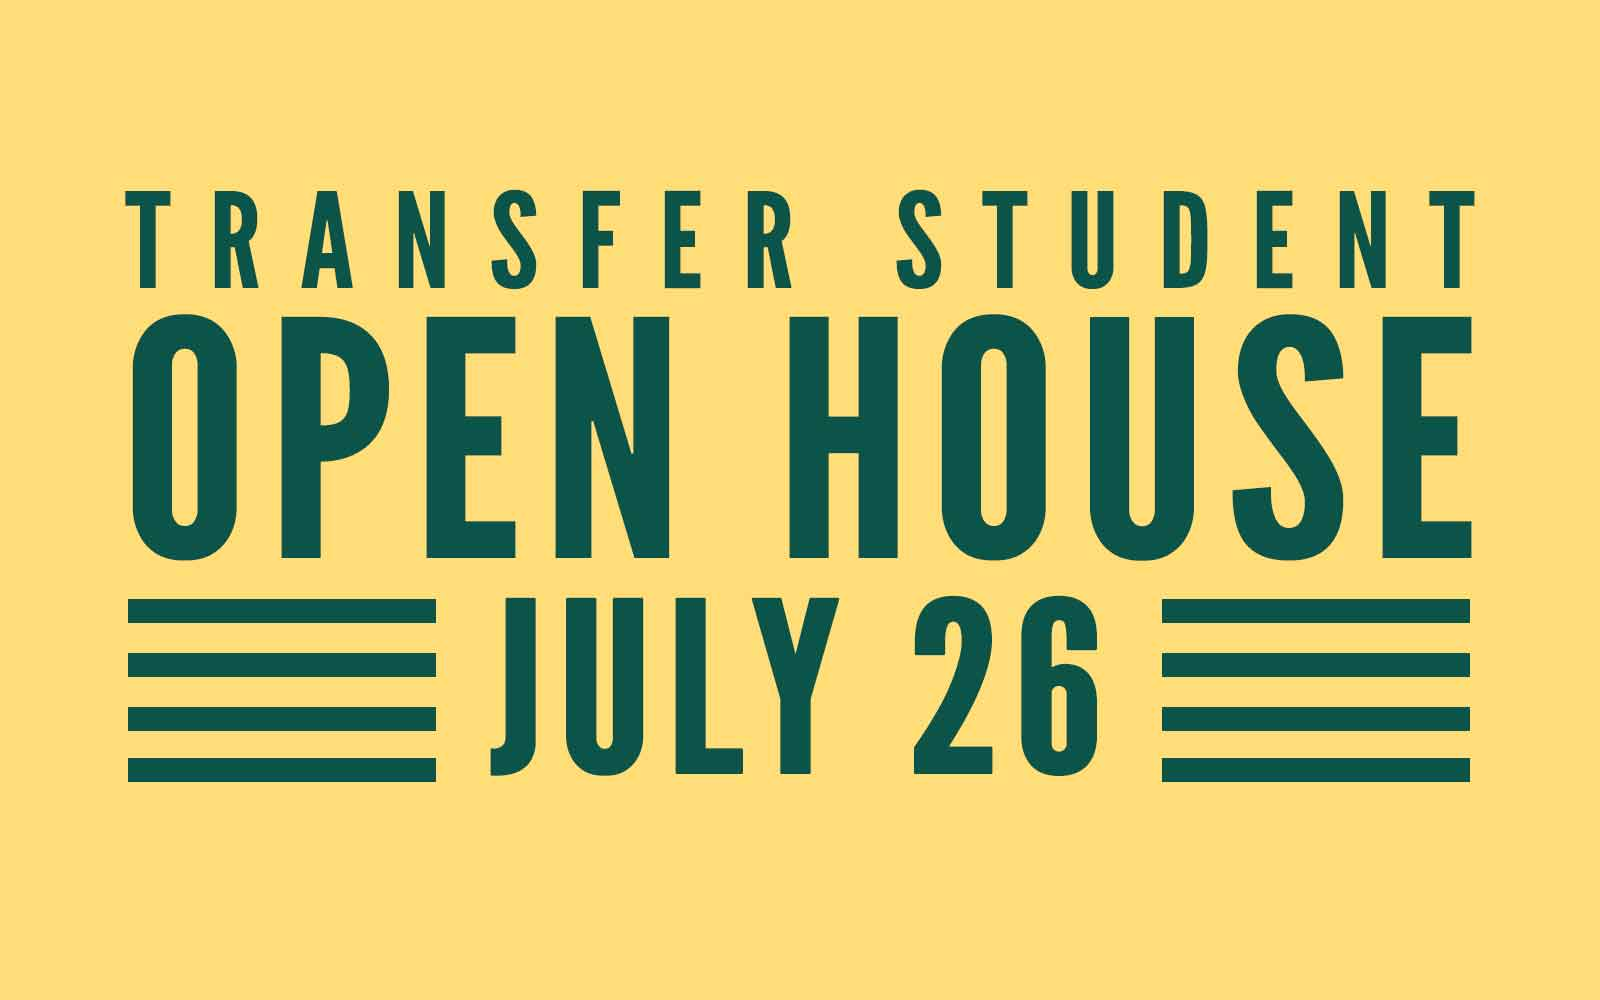 Meet with representatives from our academic programs, learn more about the transfer process, take a campus tour and more.